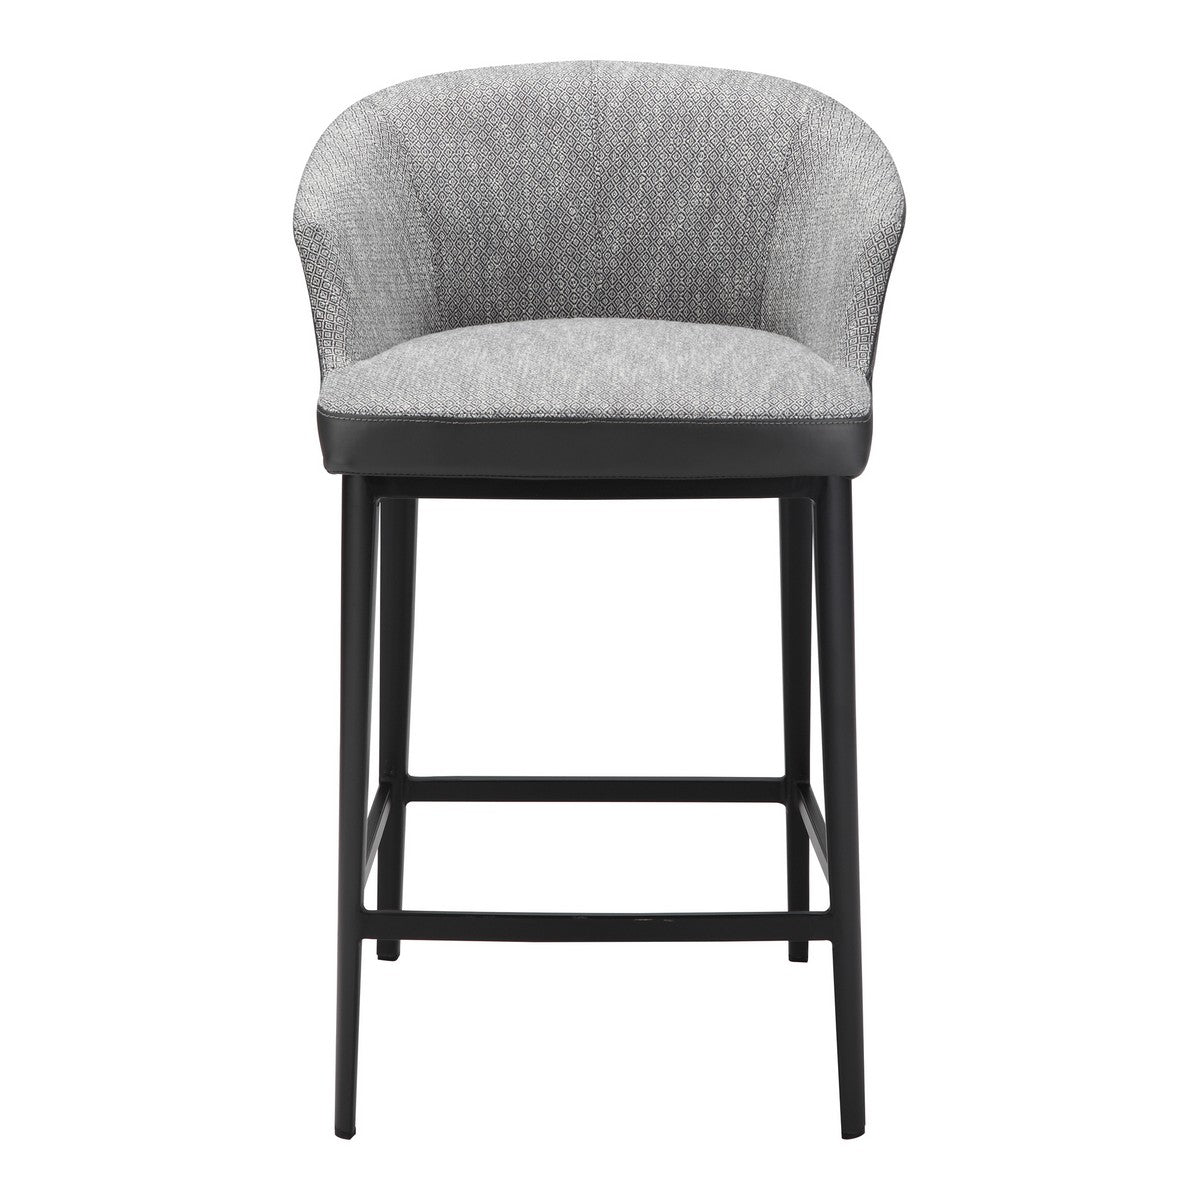 Moe's Home Collection Beckett Counter Stool Grey - EJ-1028-15 - Moe's Home Collection - Counter Stools - Minimal And Modern - 1